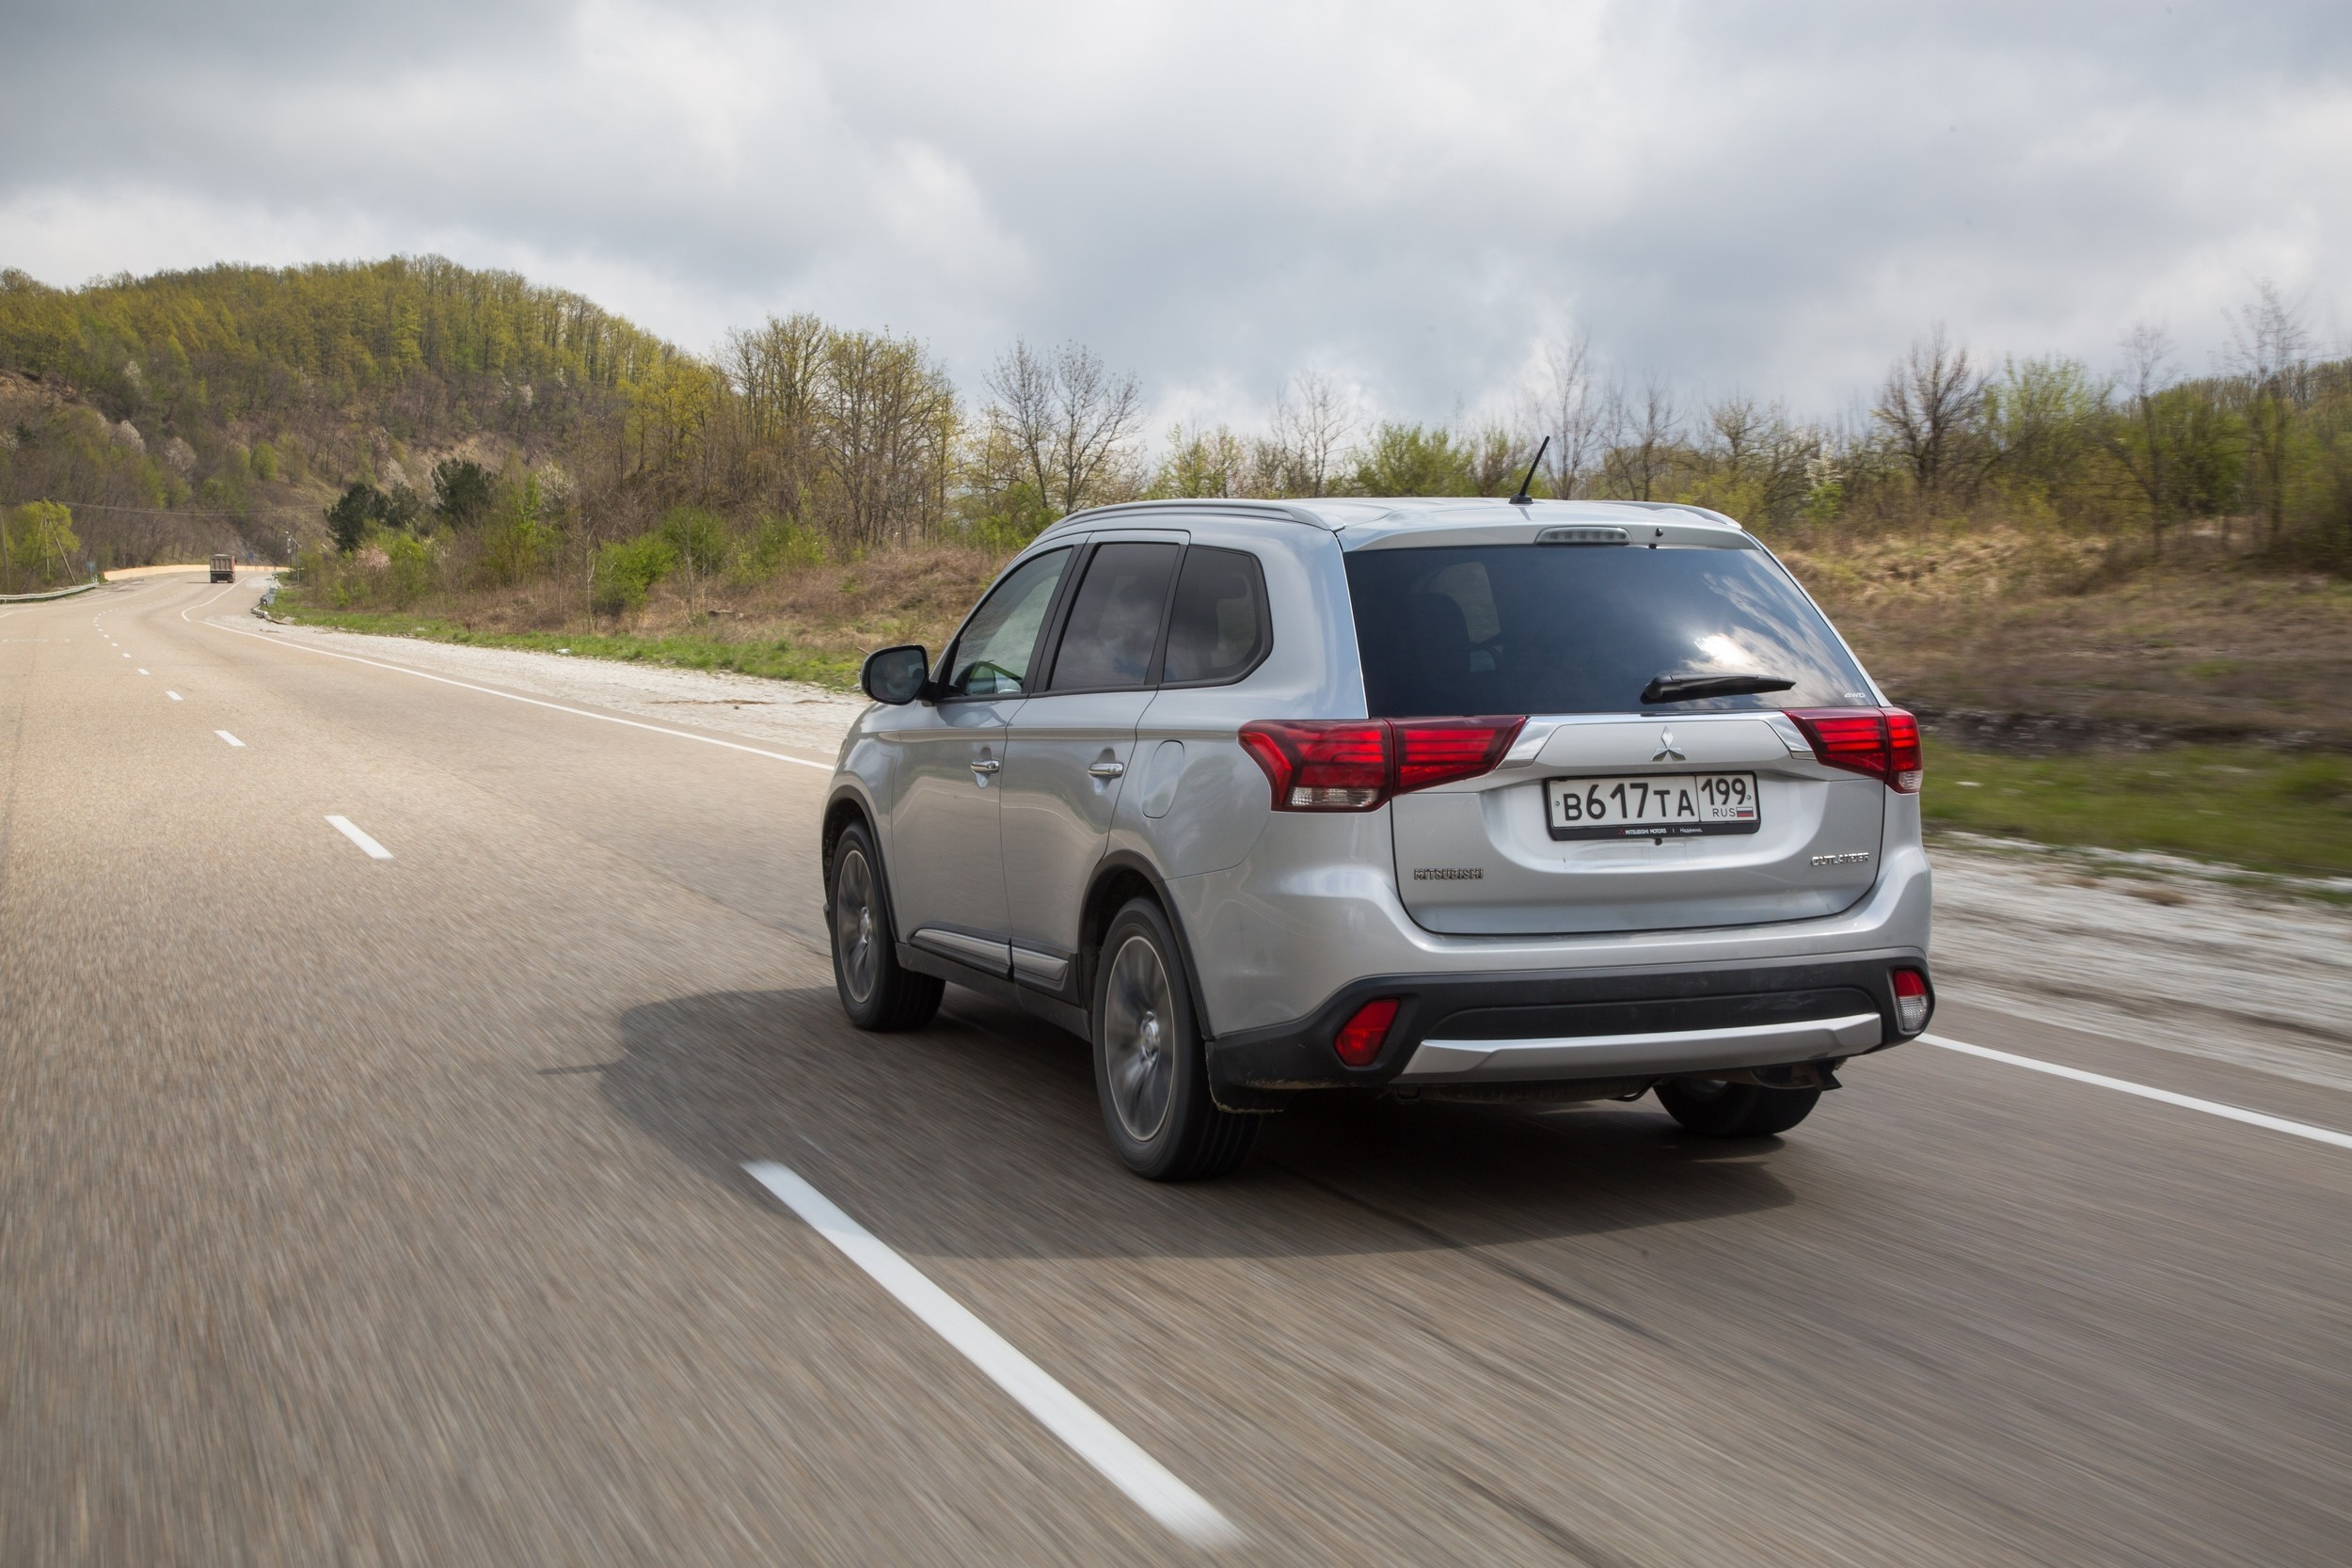 Mitsubishi_Outlander_MY2016_Car_040